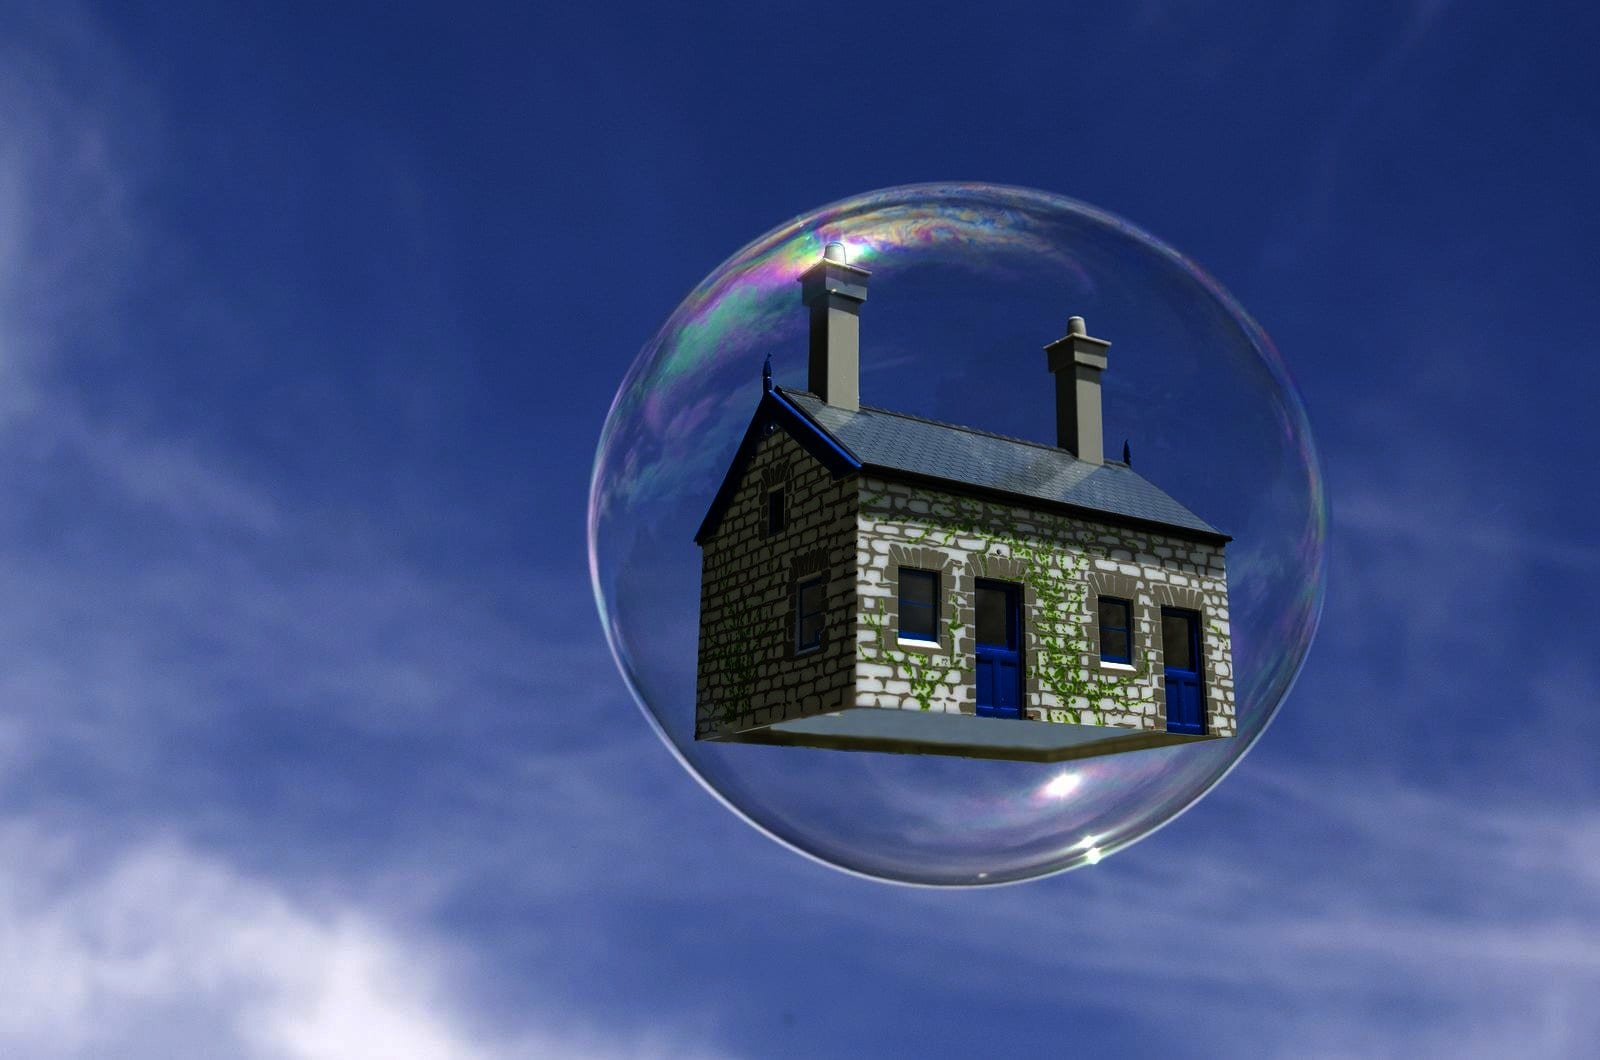 The difference between a housing bubble and inflation in US real